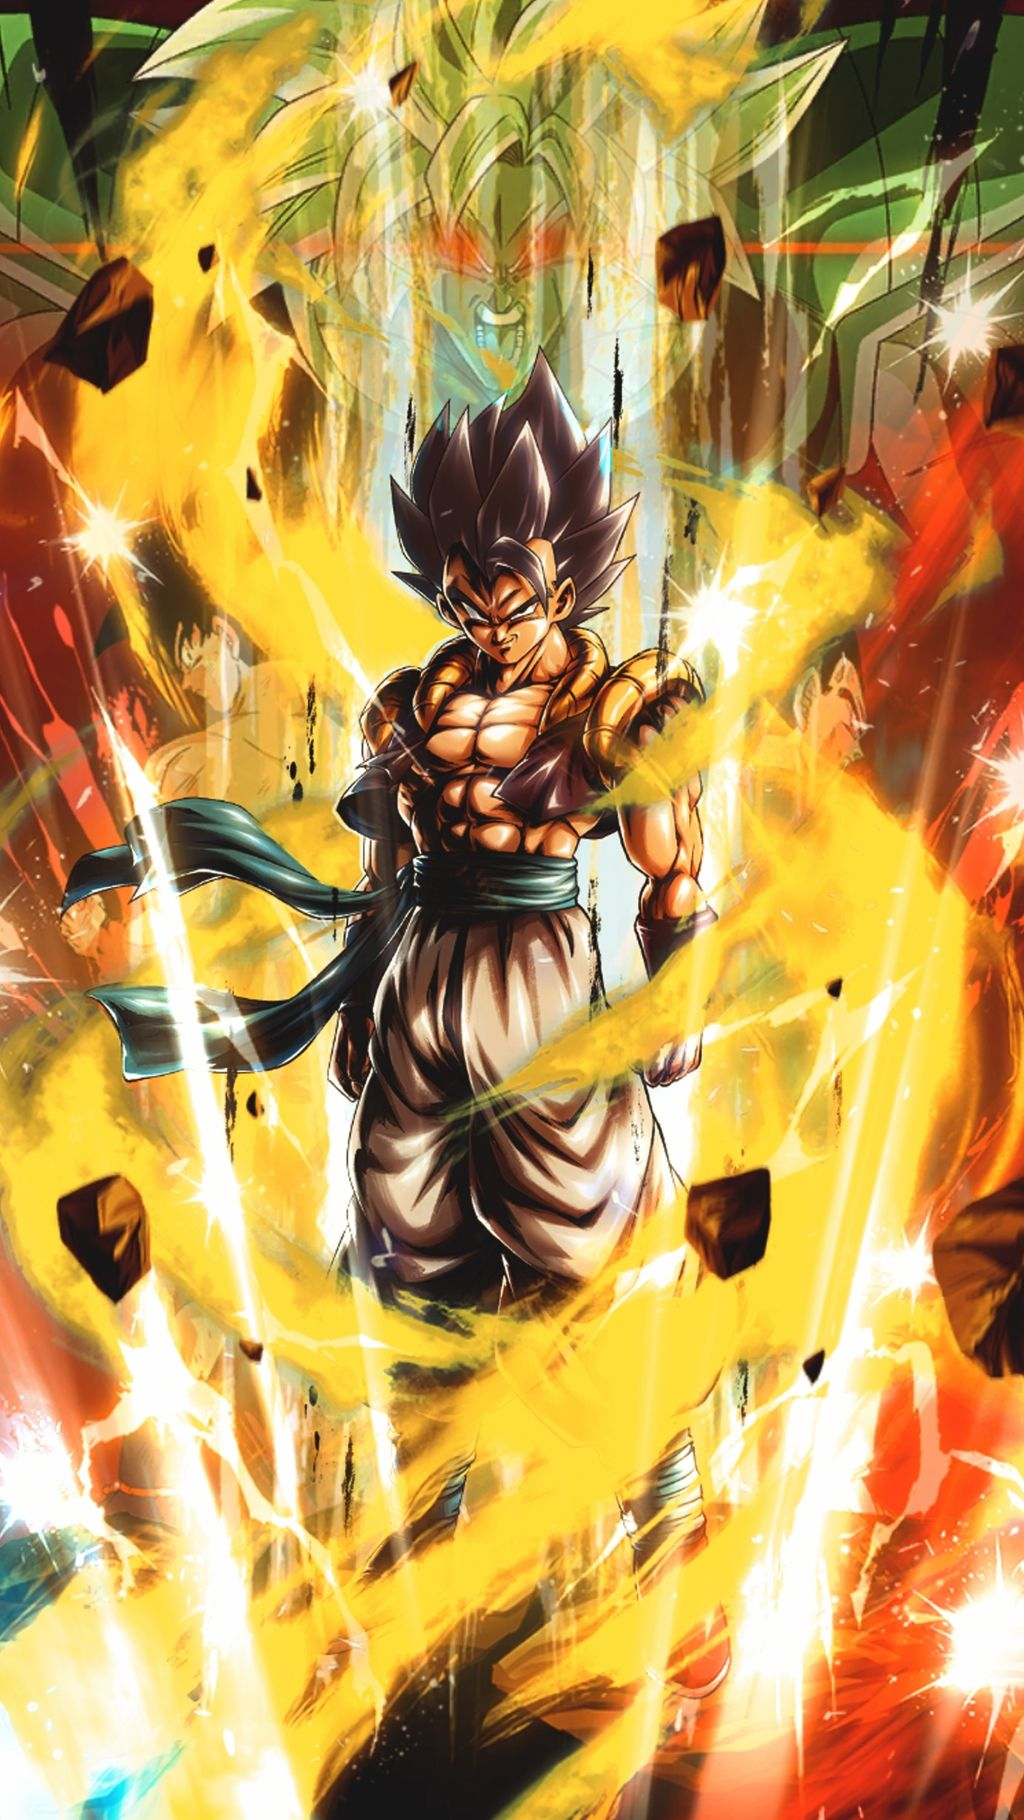 20 4k Wallpapers Of Dbz And Super For Phones In 2020 Anime Dragon Ball Super Dragon Ball Super Manga Dragon Ball Image